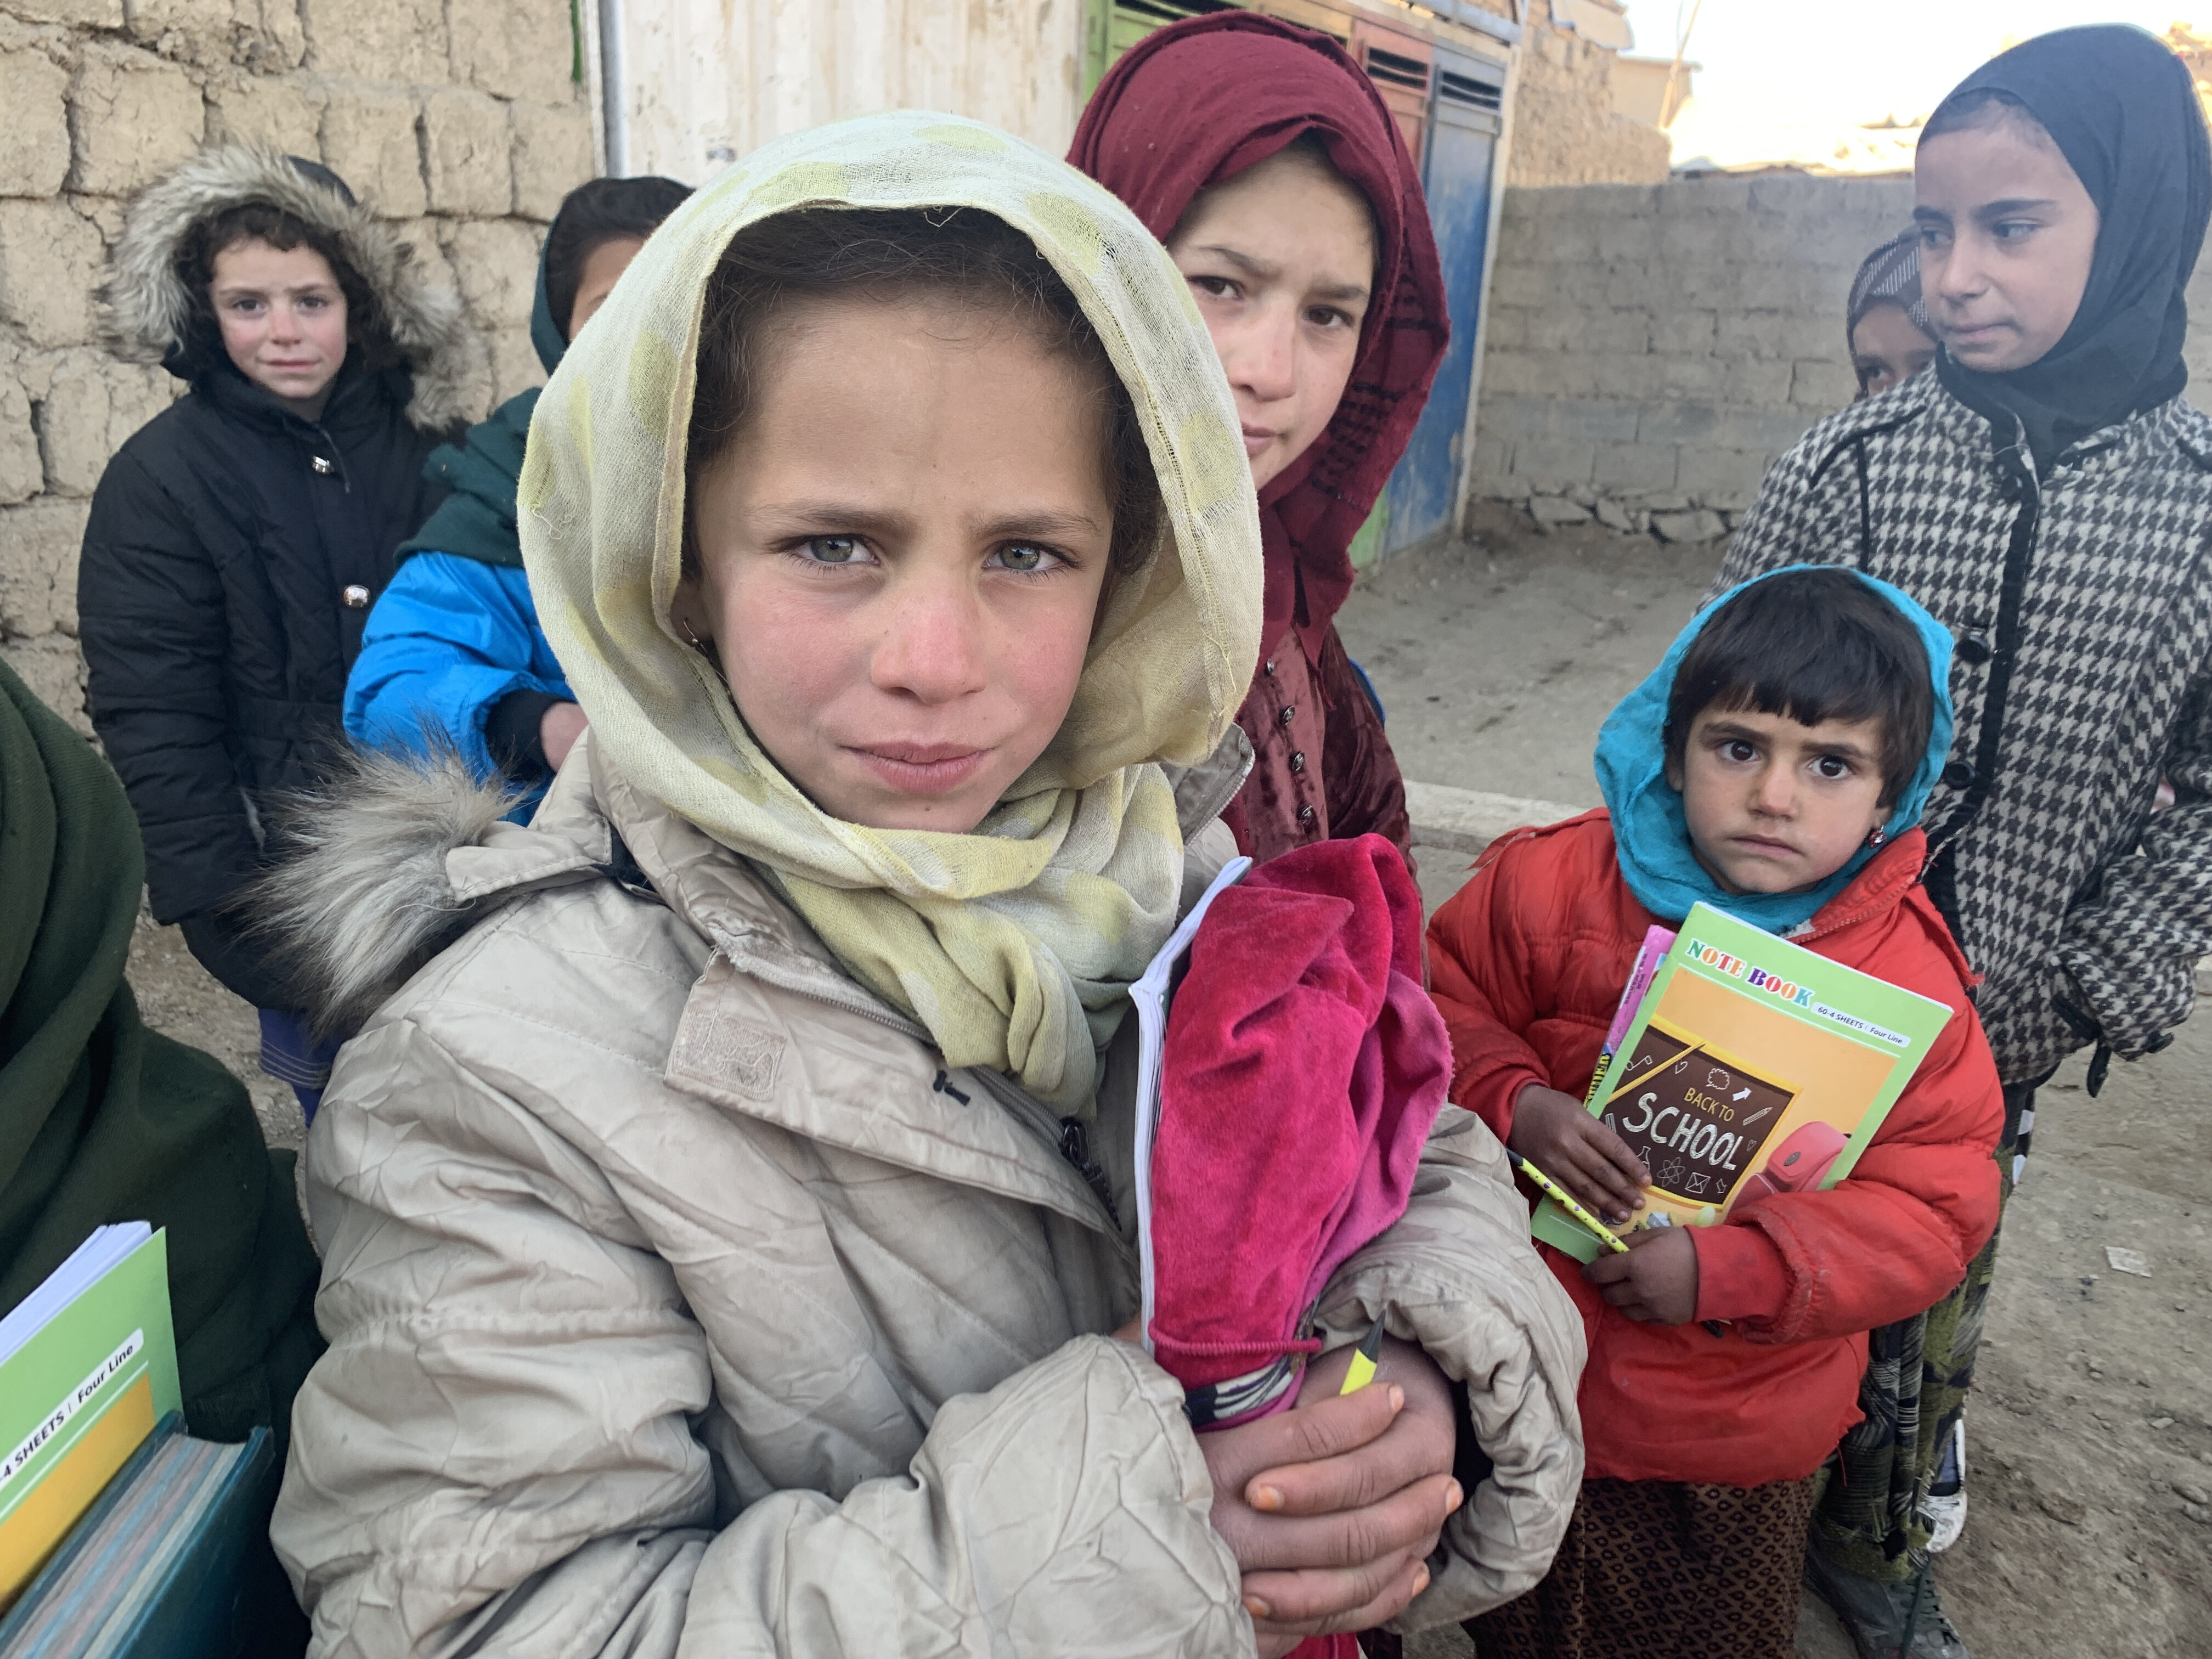 Afghan students waiting to attend school